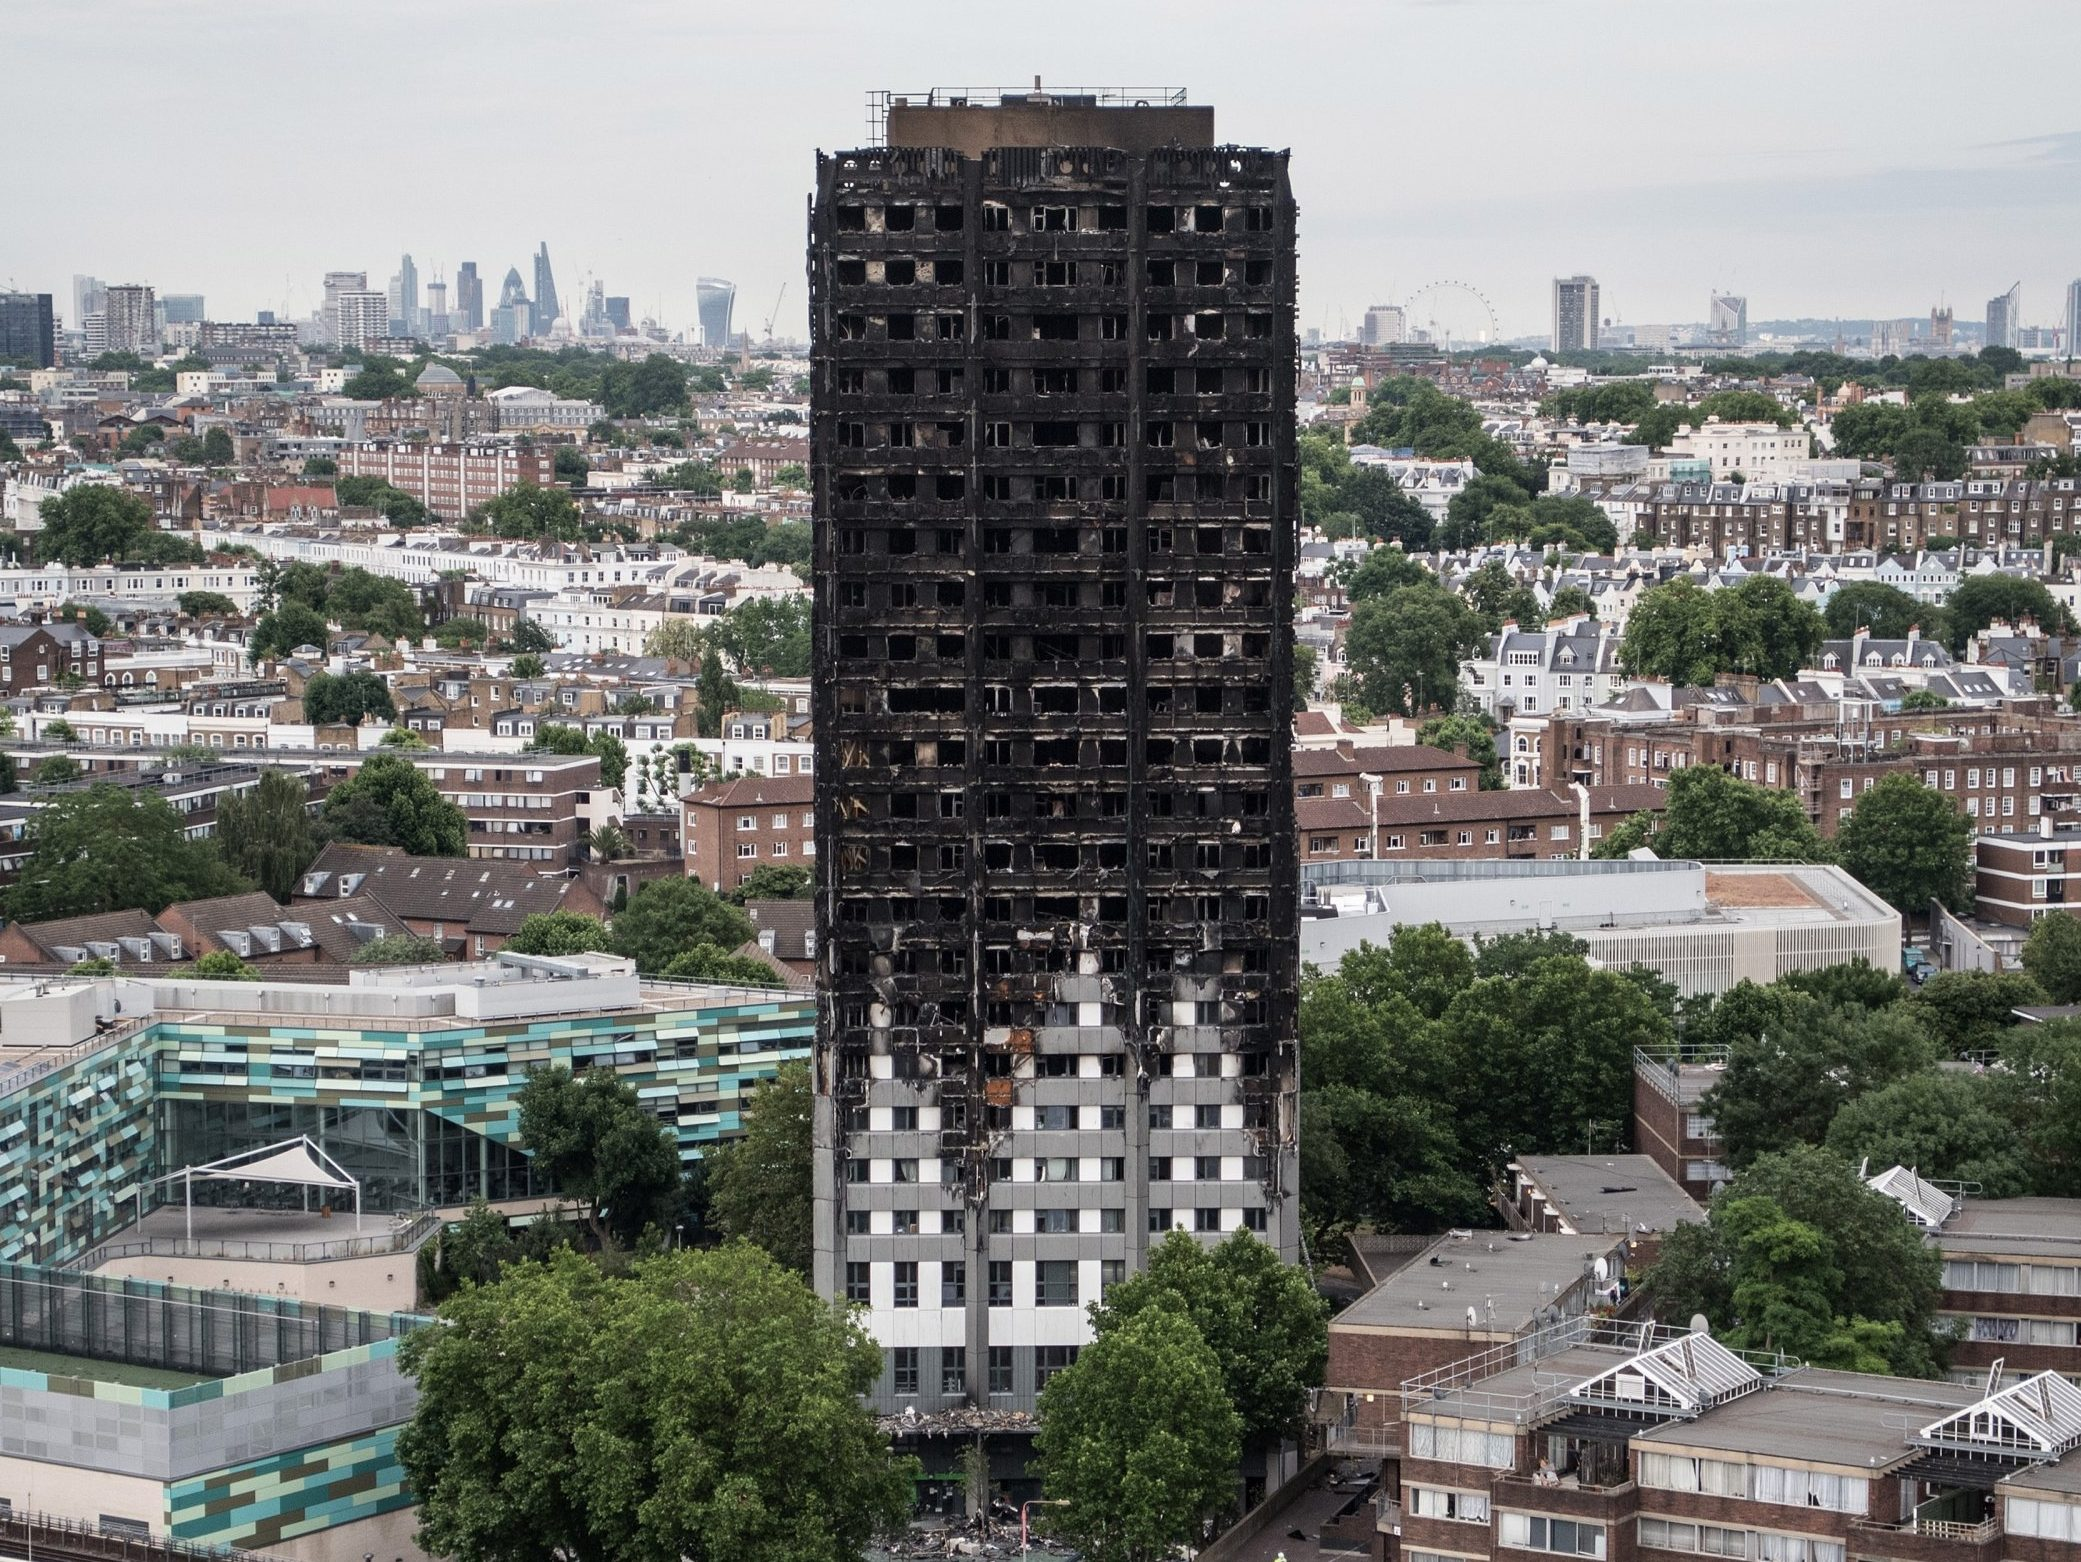 Man arrested after 'lying he lost family in Grenfell Tower to get money'